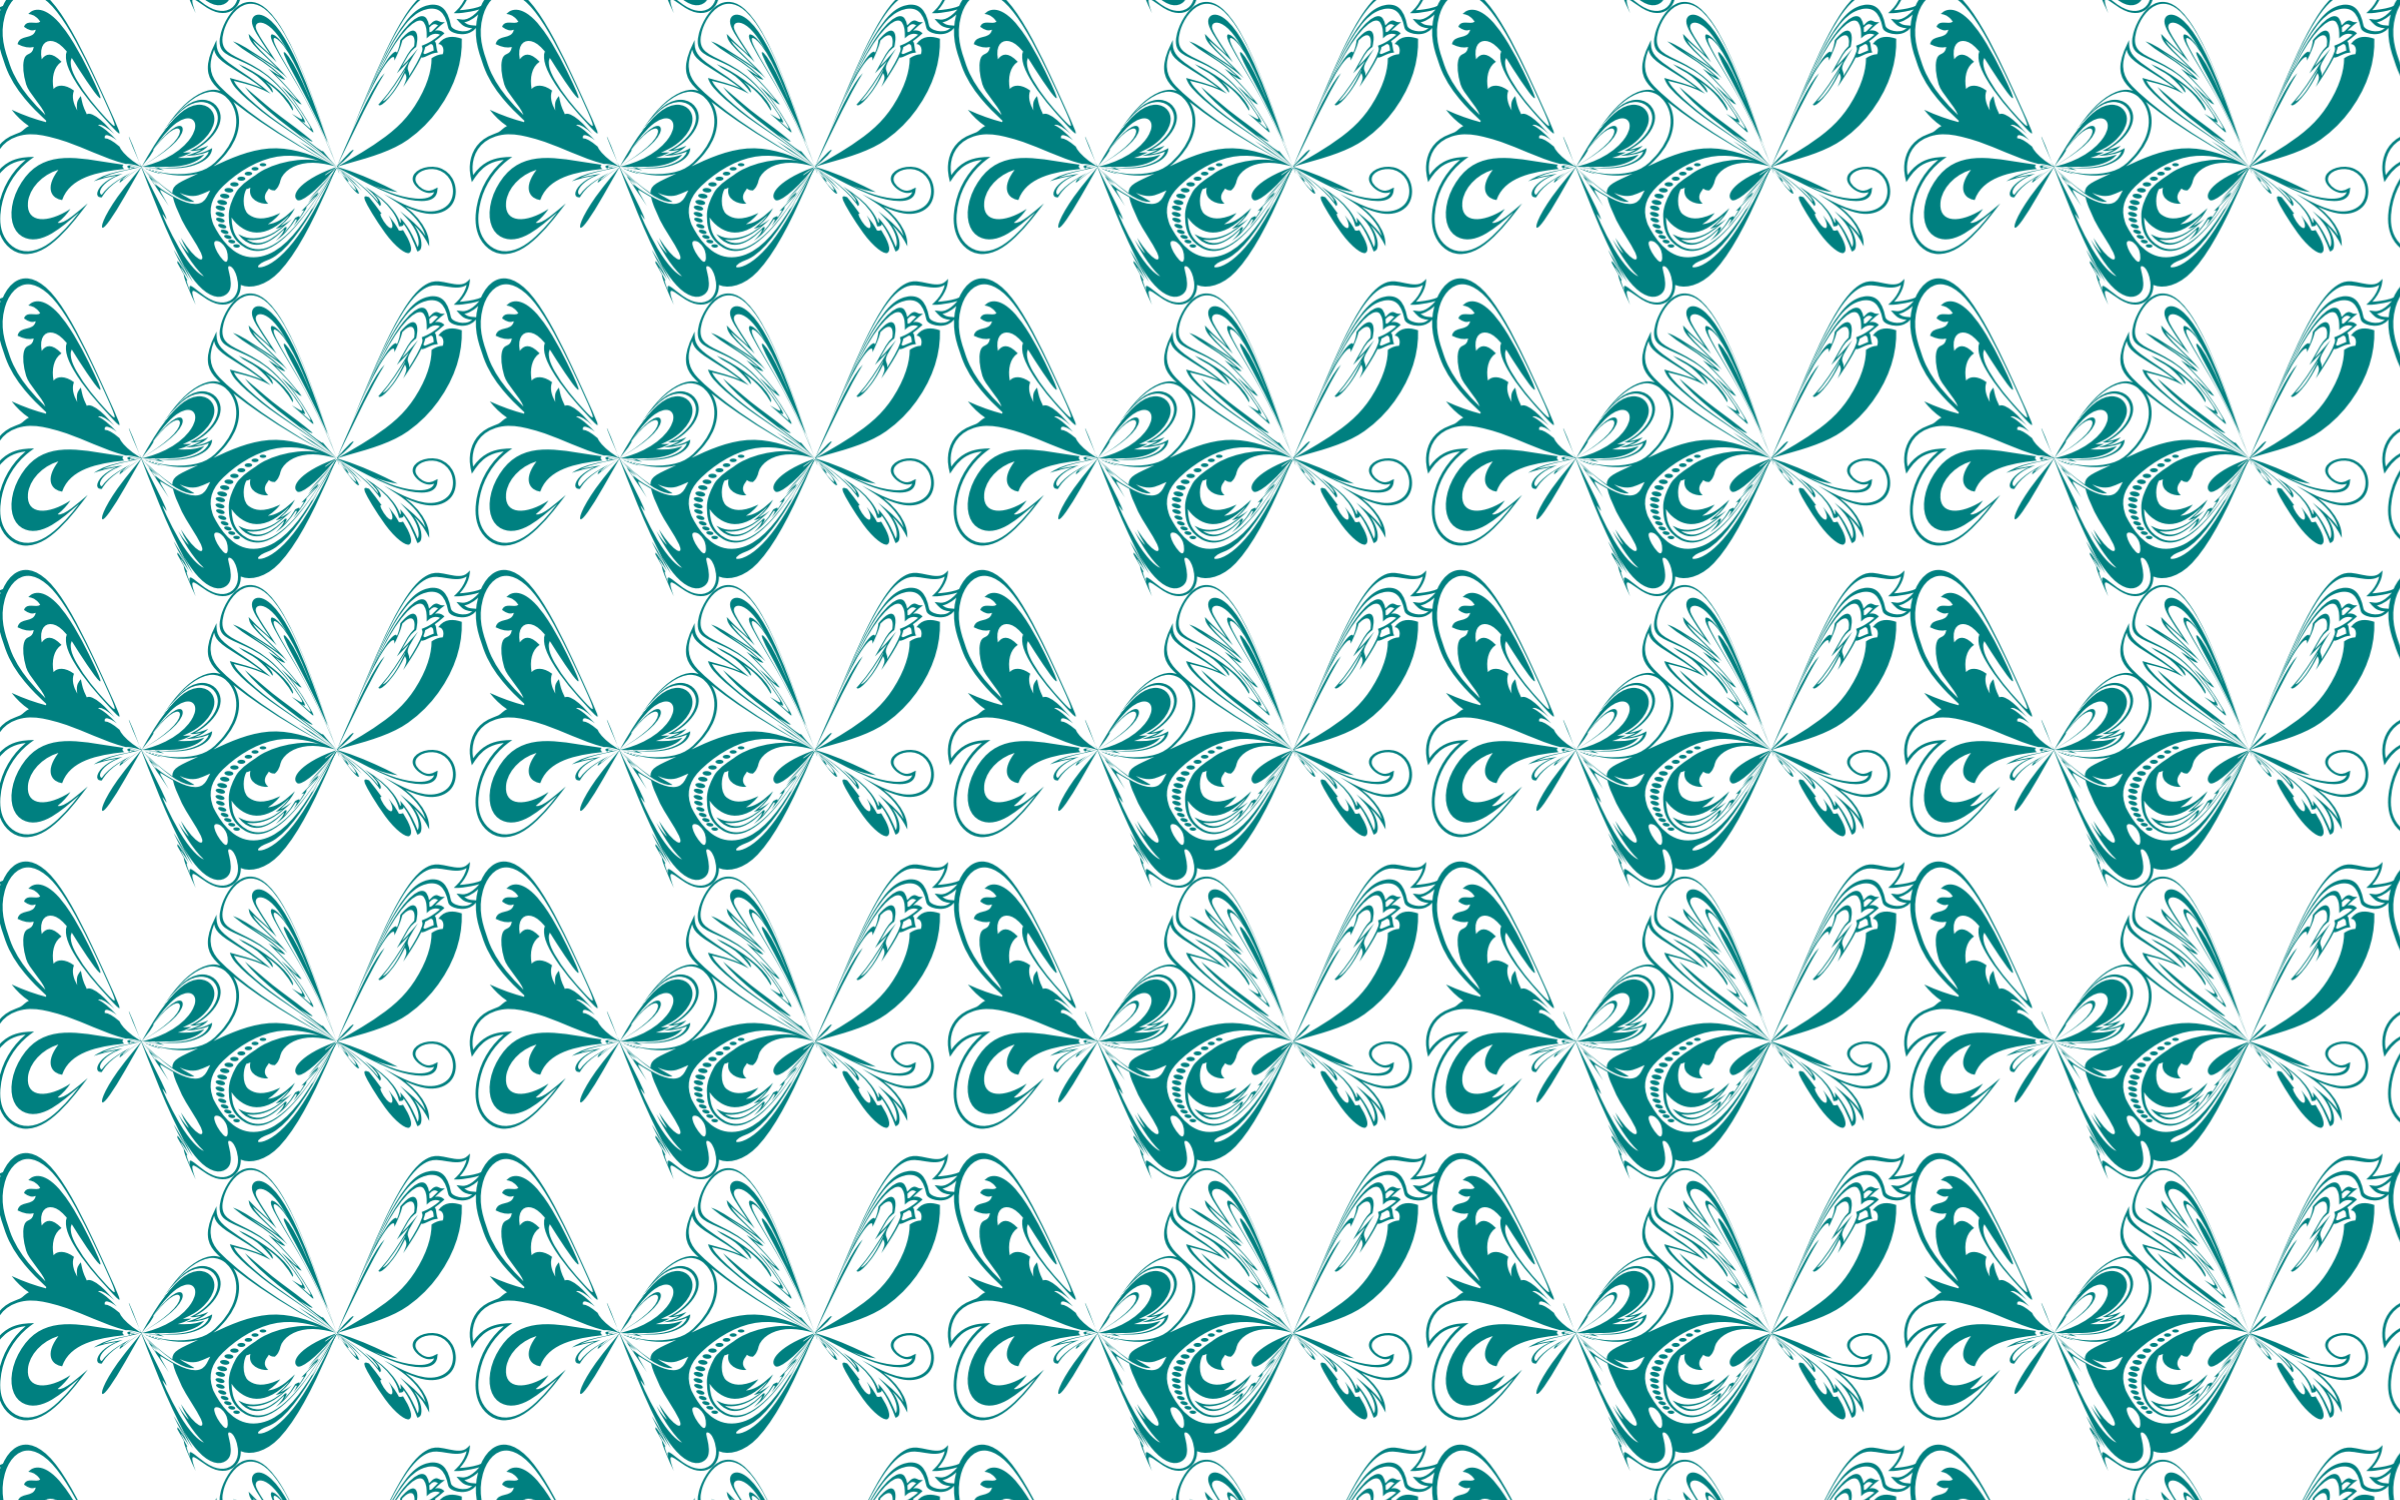 Seamless Pattern 146 by GDJ